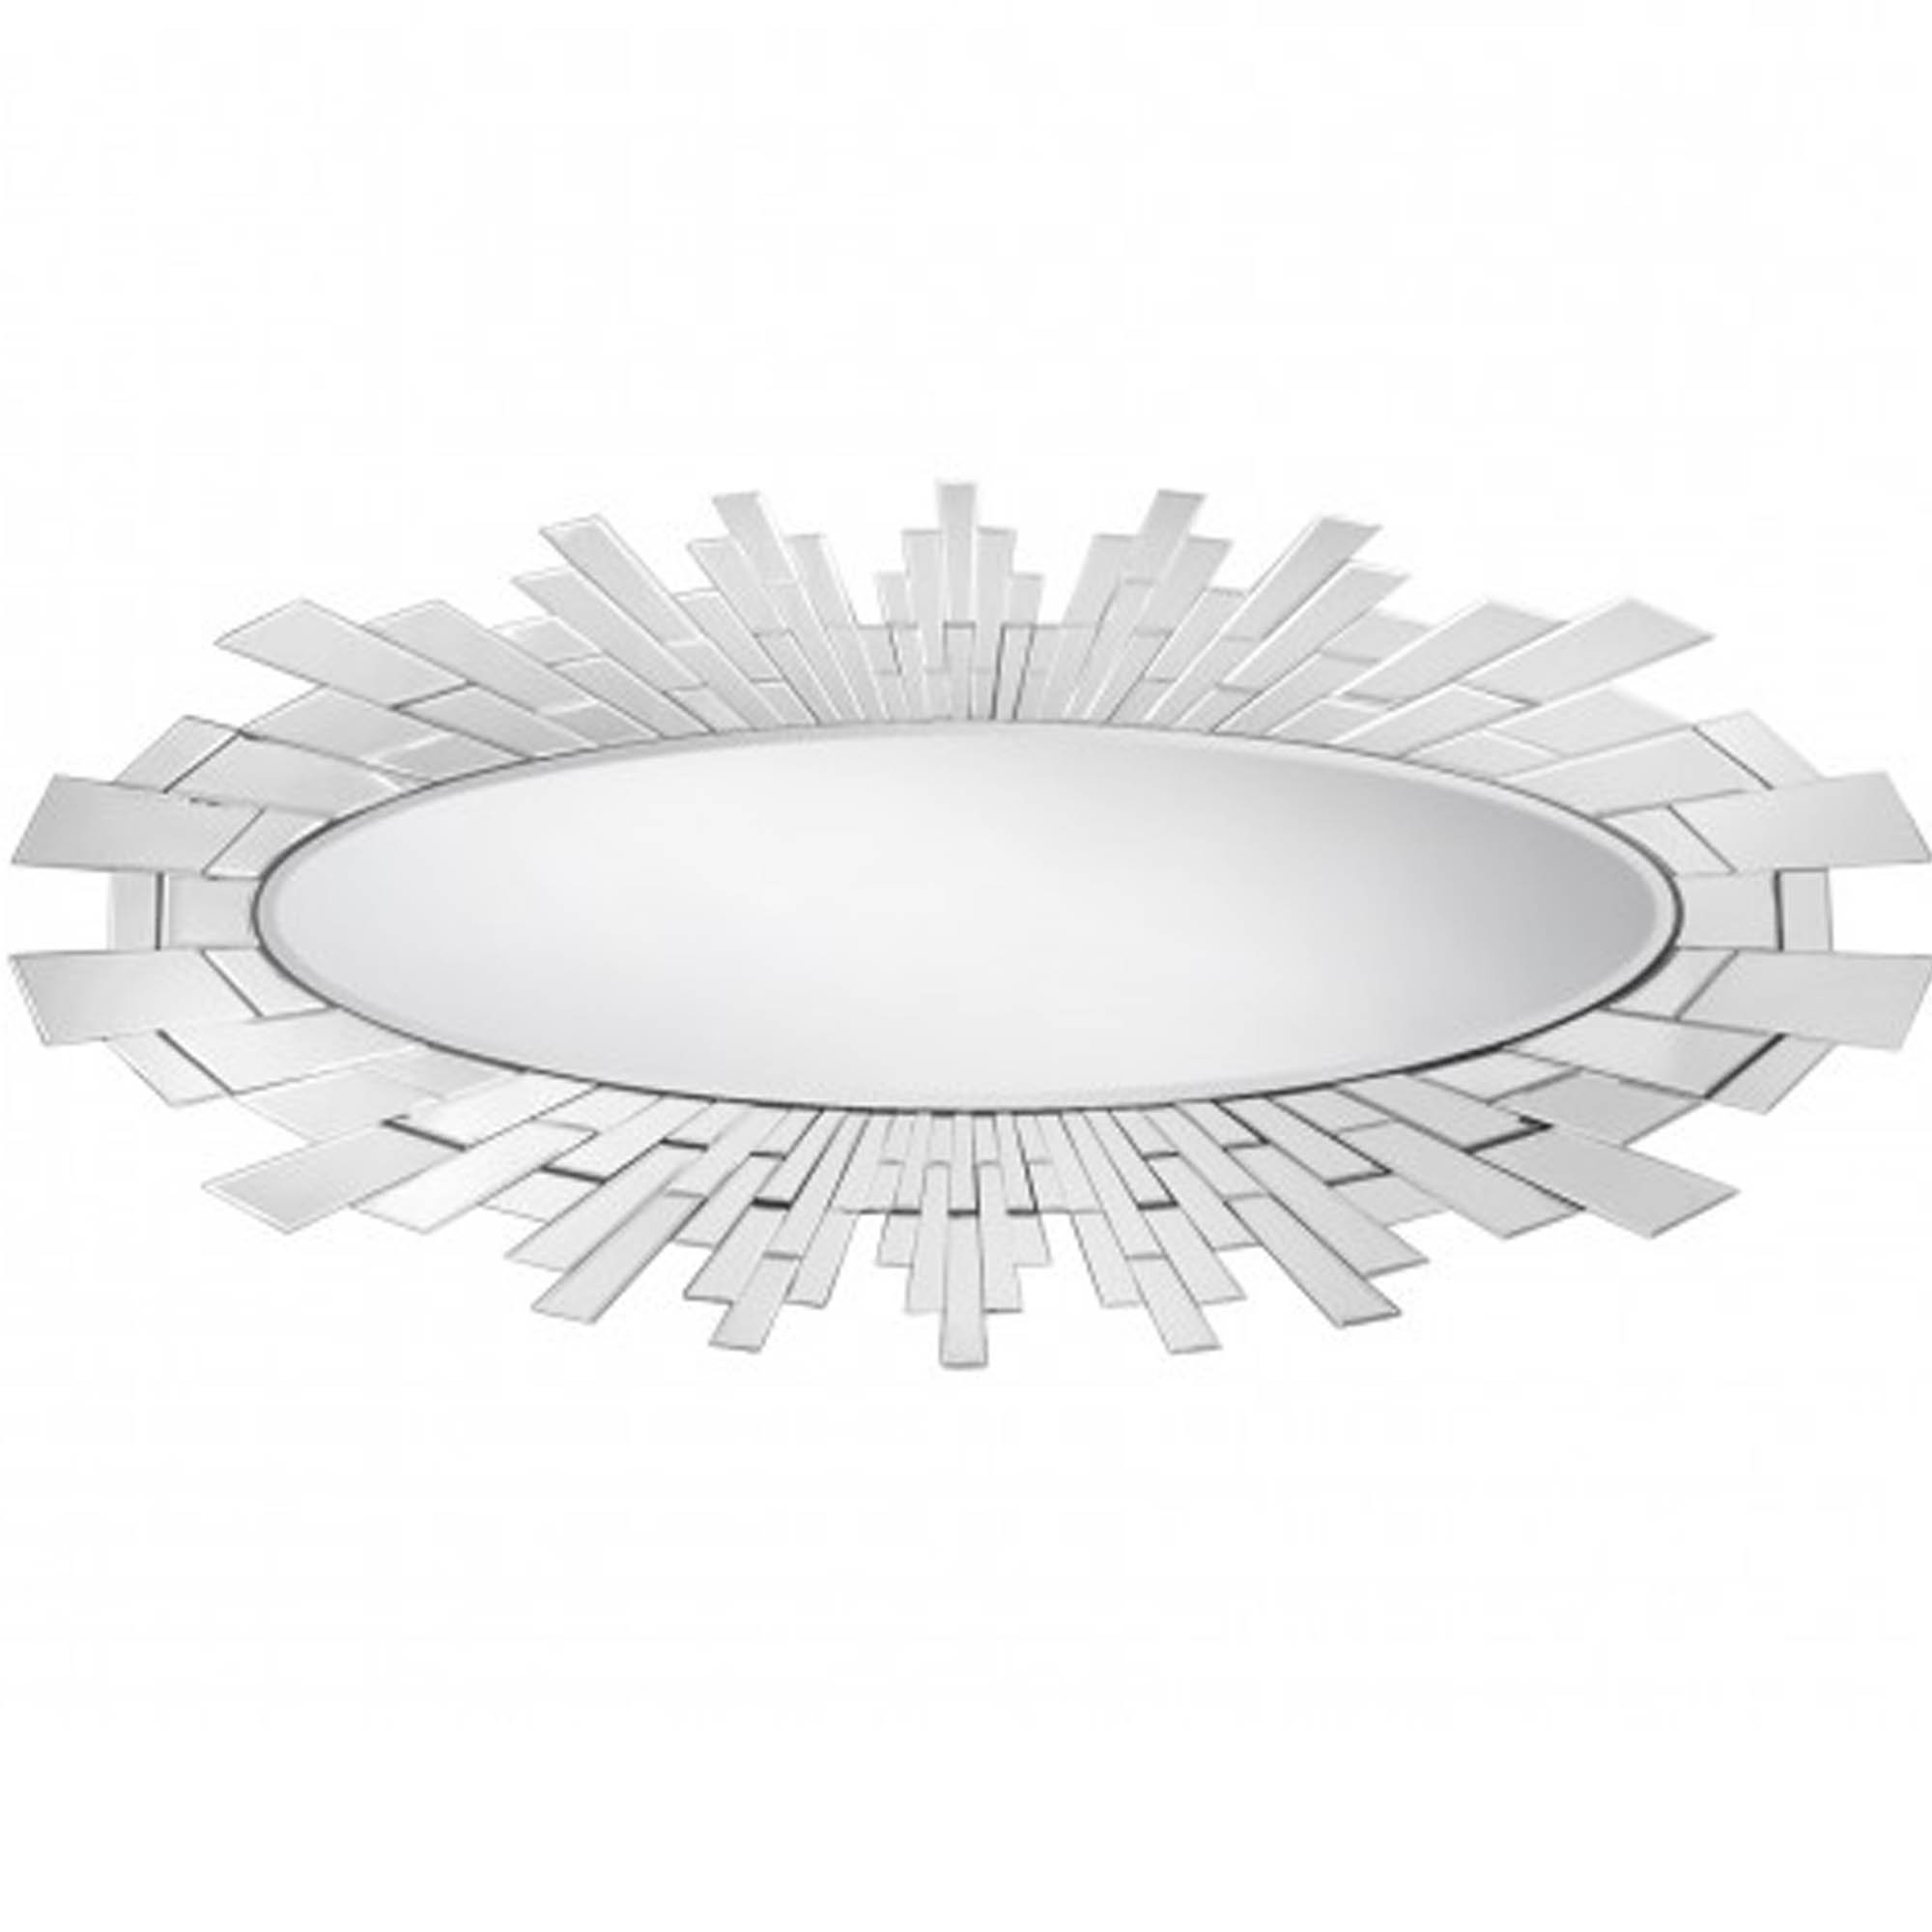 Burst Star Venetian Wall Mirror With Regard To Fashionable Star Wall Mirrors (View 1 of 20)